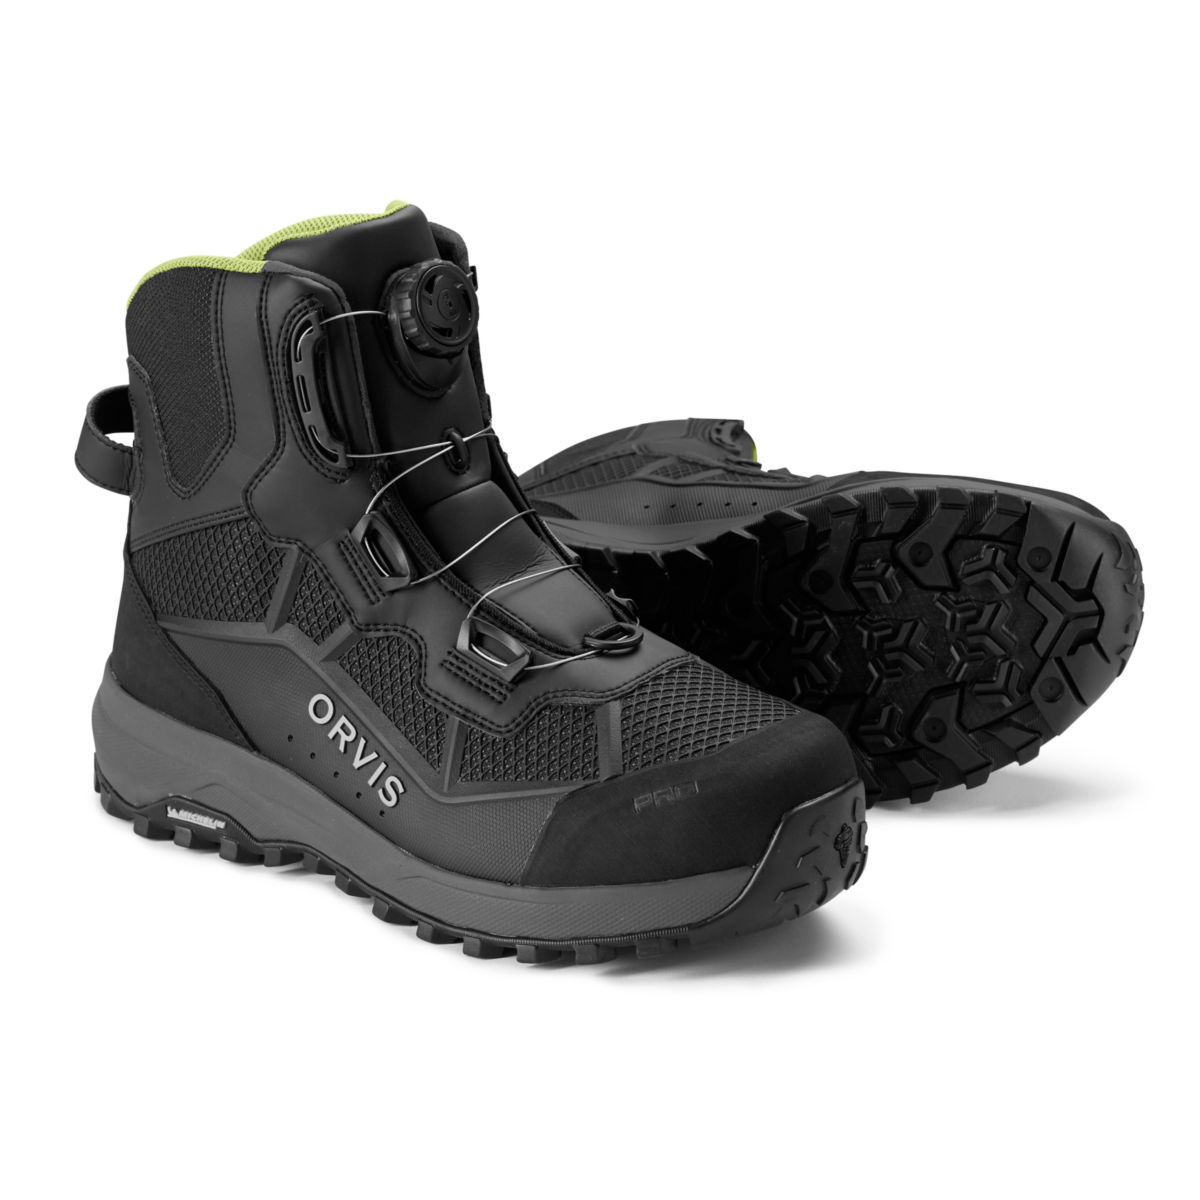 Men's PRO BOA® Wading Boots - SHADOWimage number 0